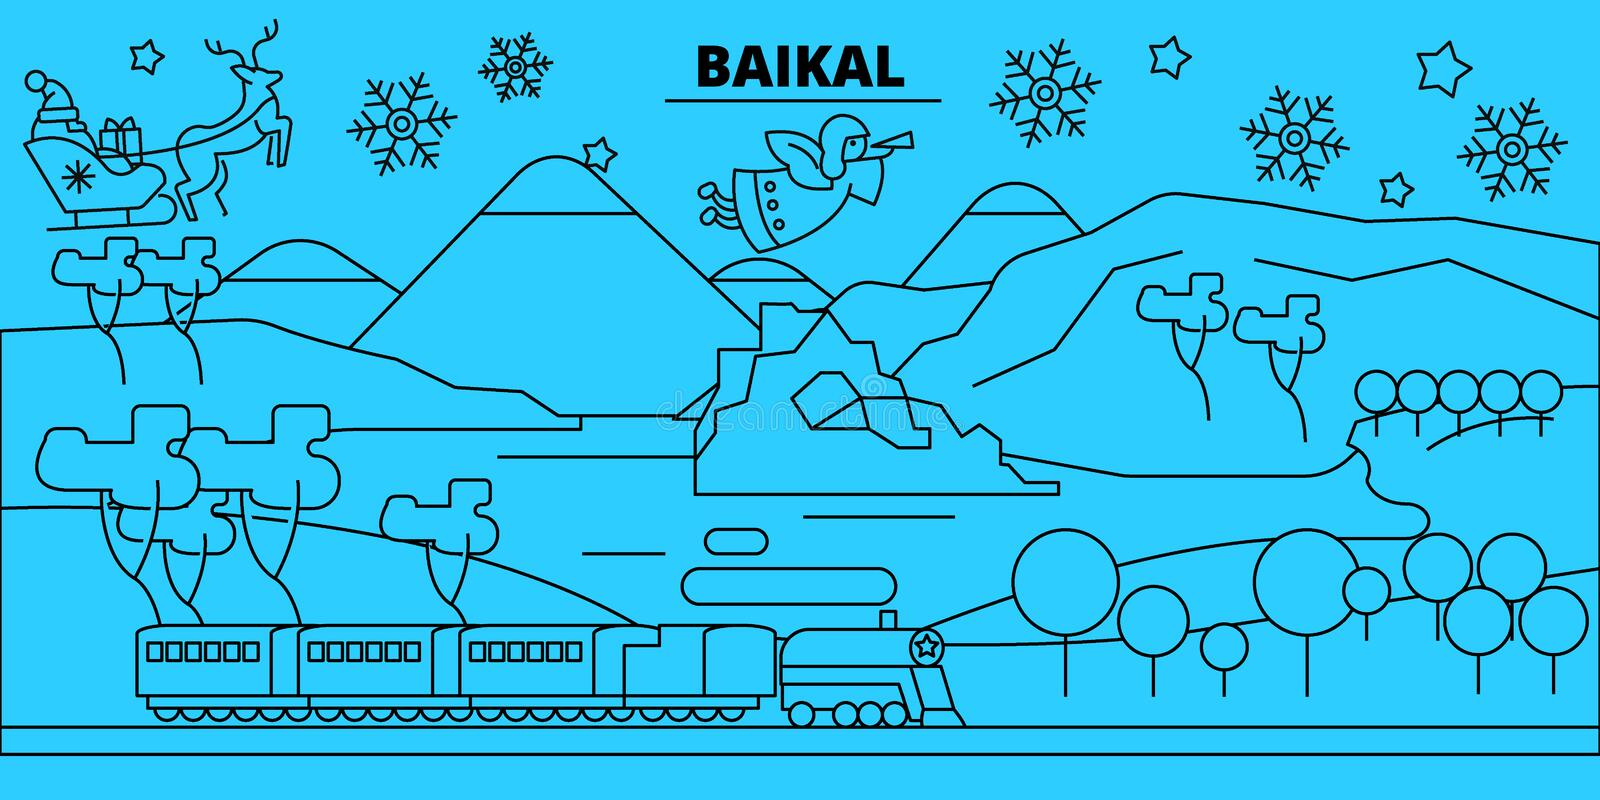 Russia, Baikal winter holidays skyline. Merry Christmas, Happy New Year decorated banner with Santa Claus.Russia, Baikal. Russia, Baikal winter holidays skyline royalty free illustration